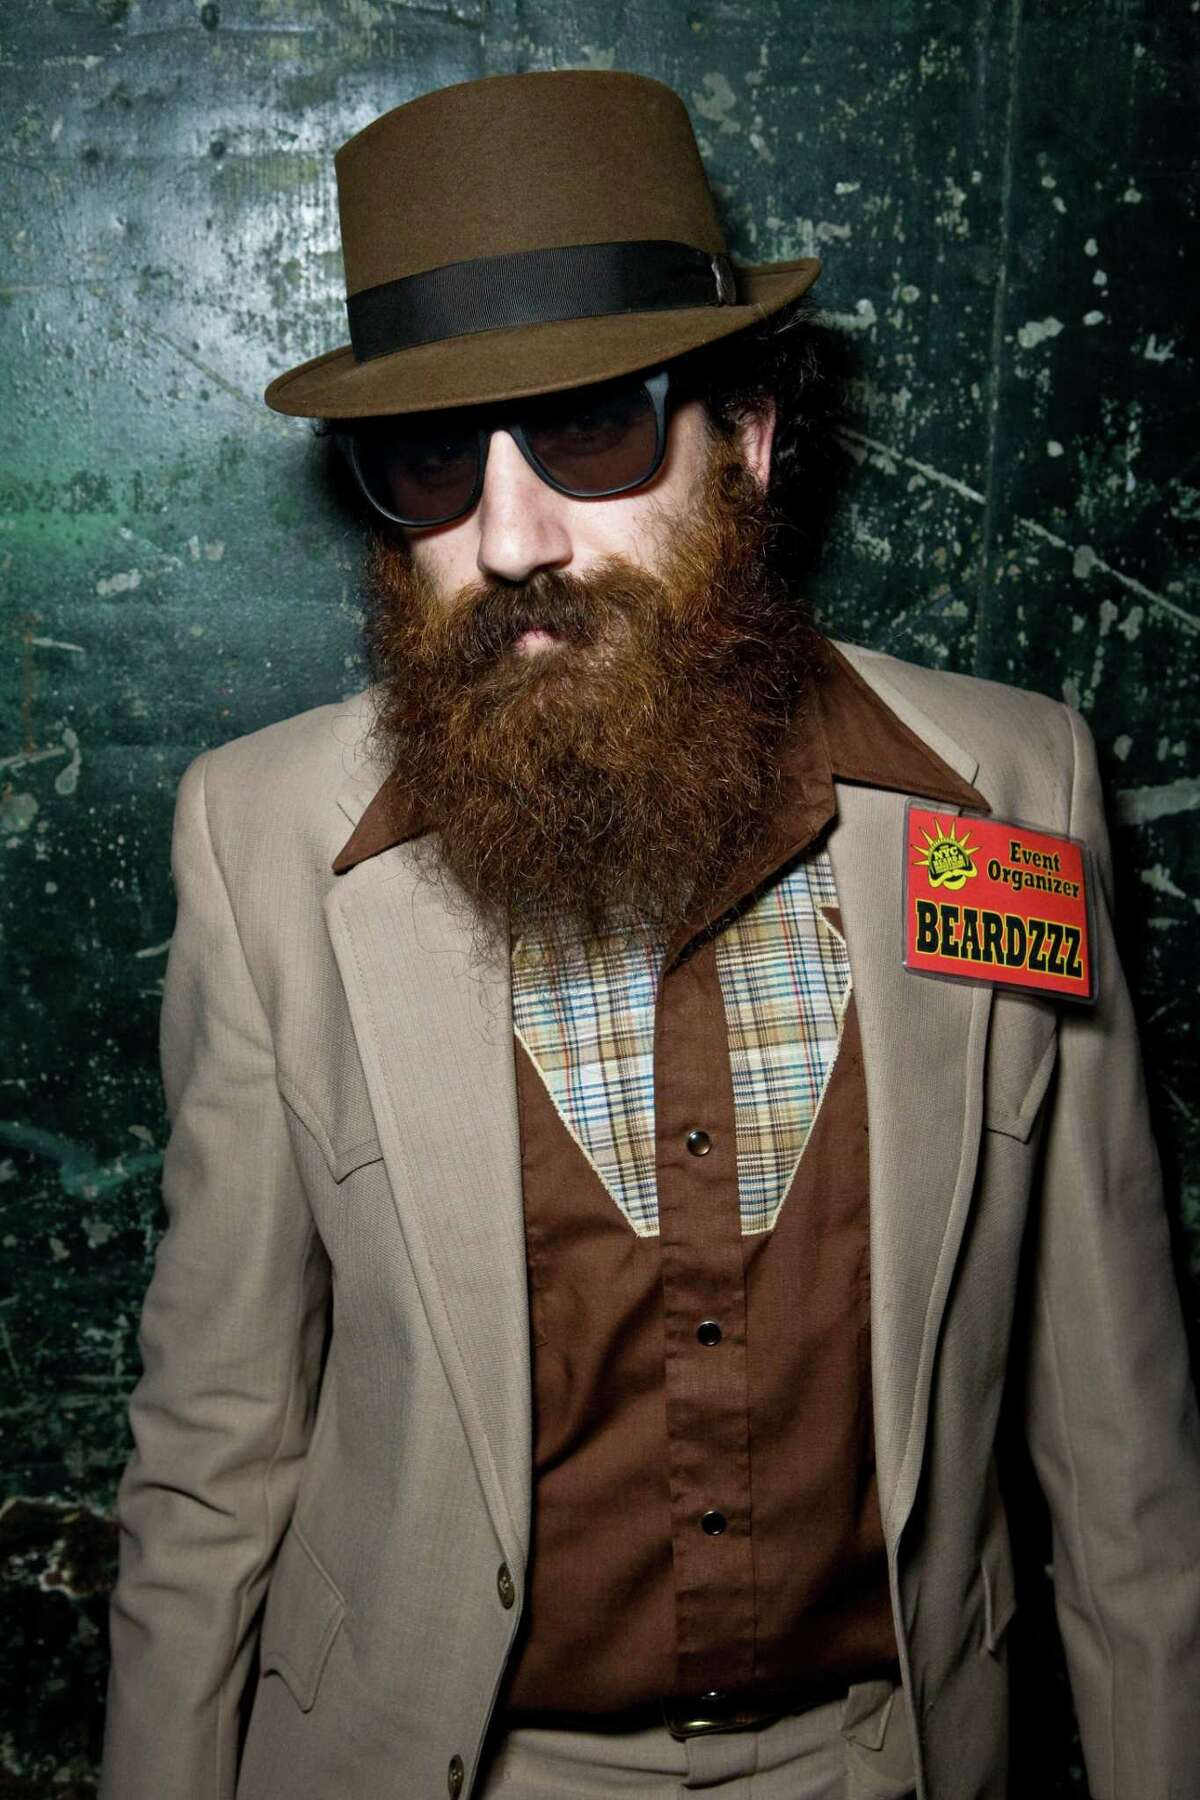 """Like the hipster, lumberjack-metrosexual look? Wear a trilby. Yes, the trilby skews trendy, mostly because you see it with so many skinny jeans. That said, the trilby looks much more hip than hipster when paired with a sharp suit, cardigan, or turtleneck. Vests look good with trilbies as well, provided you don't mind the Mumford & Sons comparisons. Bow-tie wearers wear it well with a trilby, too. The trilby usually has a taller crown, wider band and narrower brim than the fedora. Trilby style icons include Don Draper in """"Mad Men"""" and the late Leonard Cohen."""